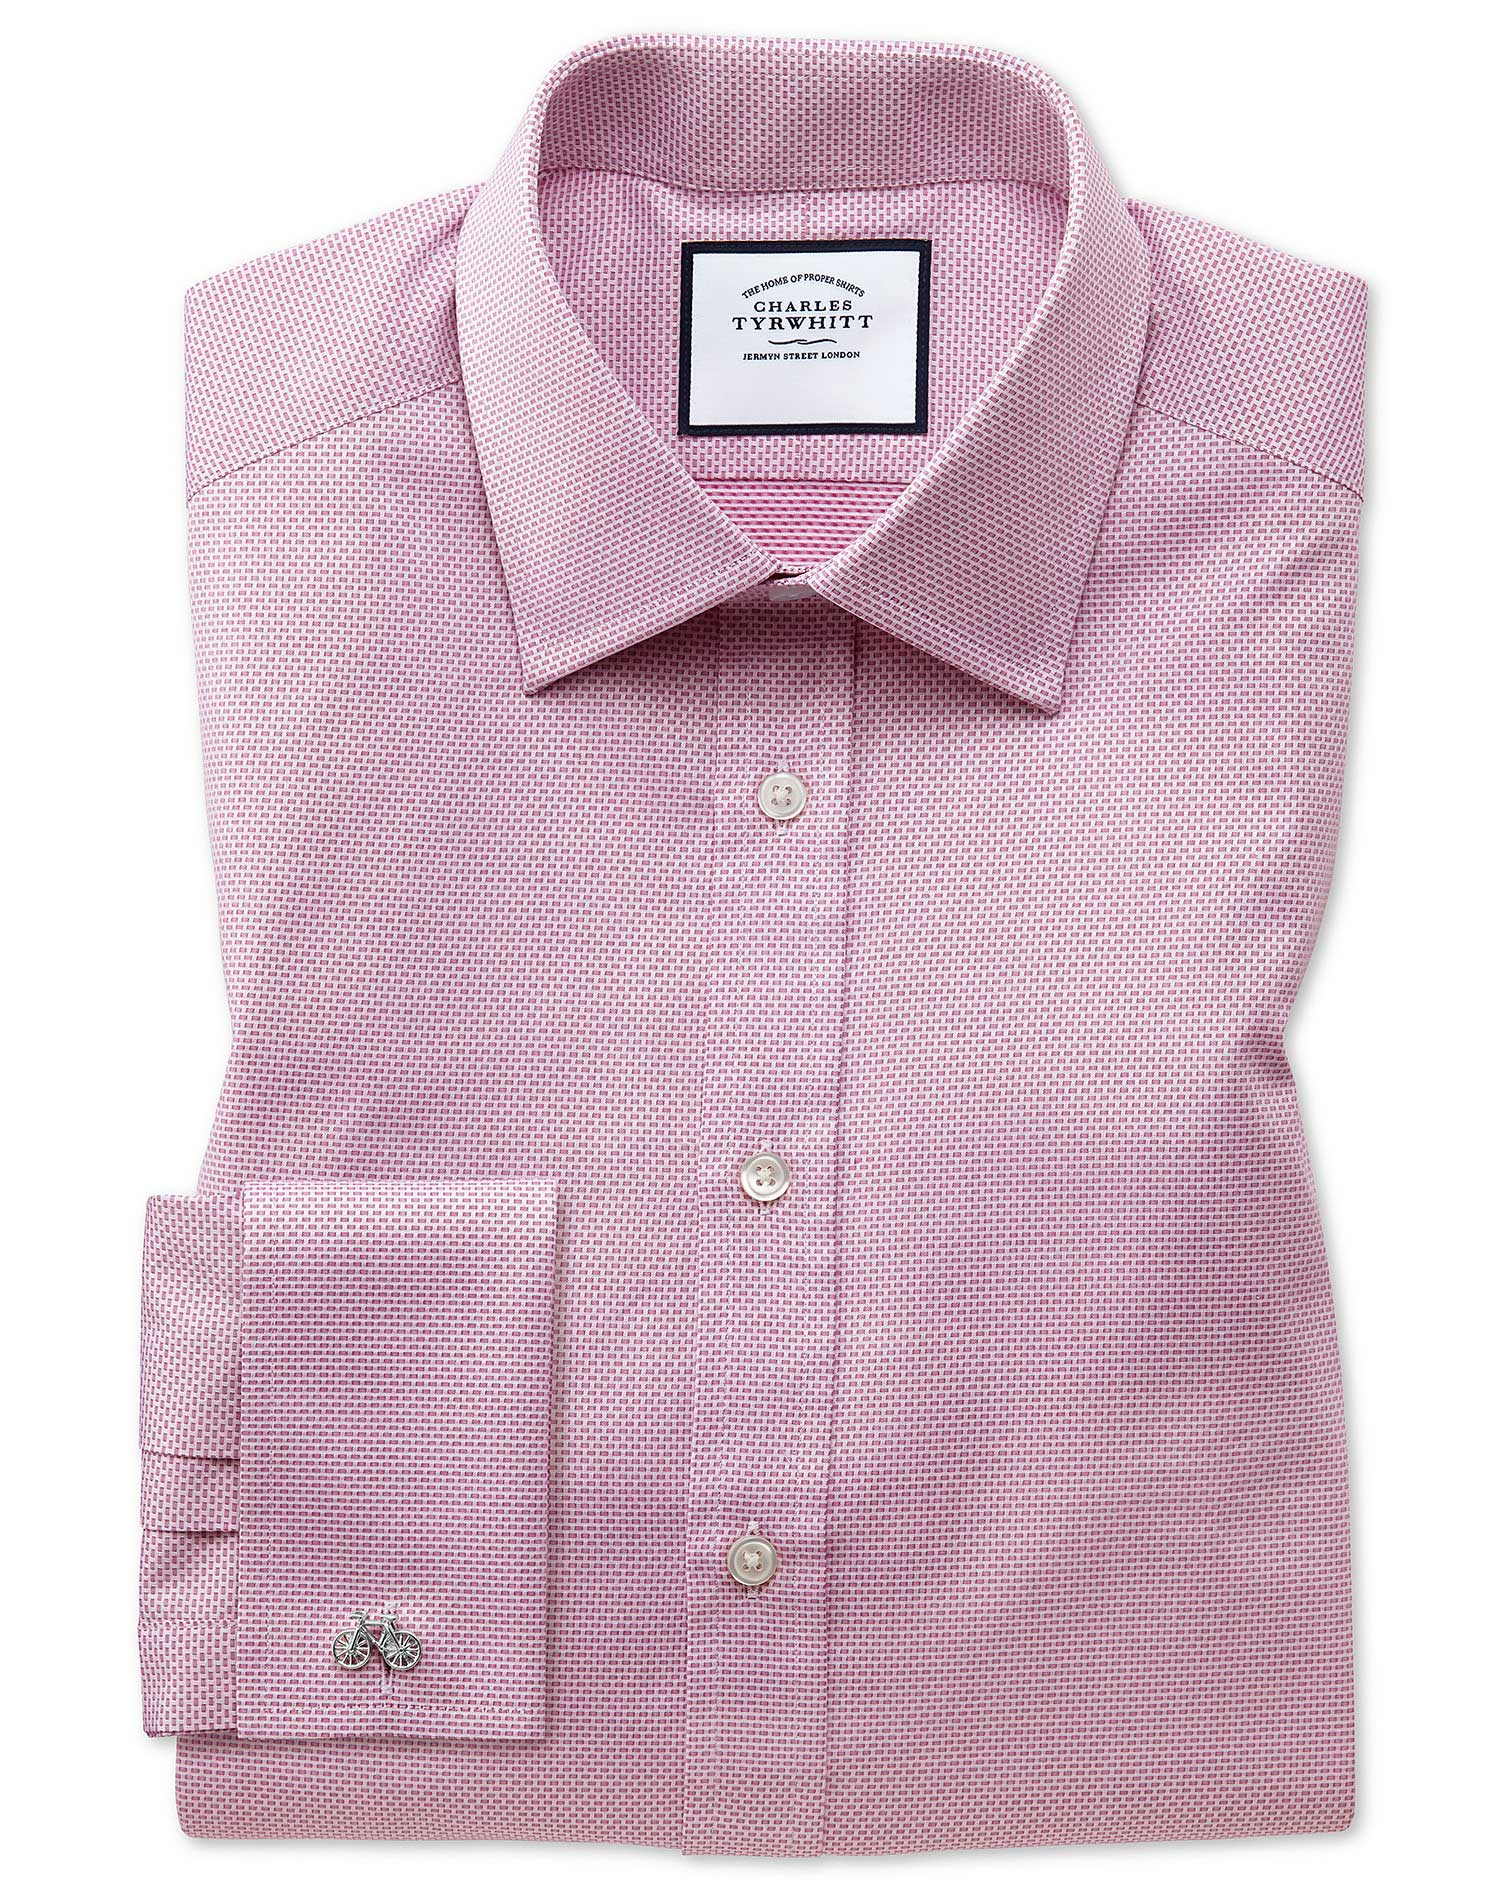 Slim Fit Magenta Cube Weave Egyptian Cotton Formal Shirt Single Cuff Size 15.5/35 by Charles Tyrwhit